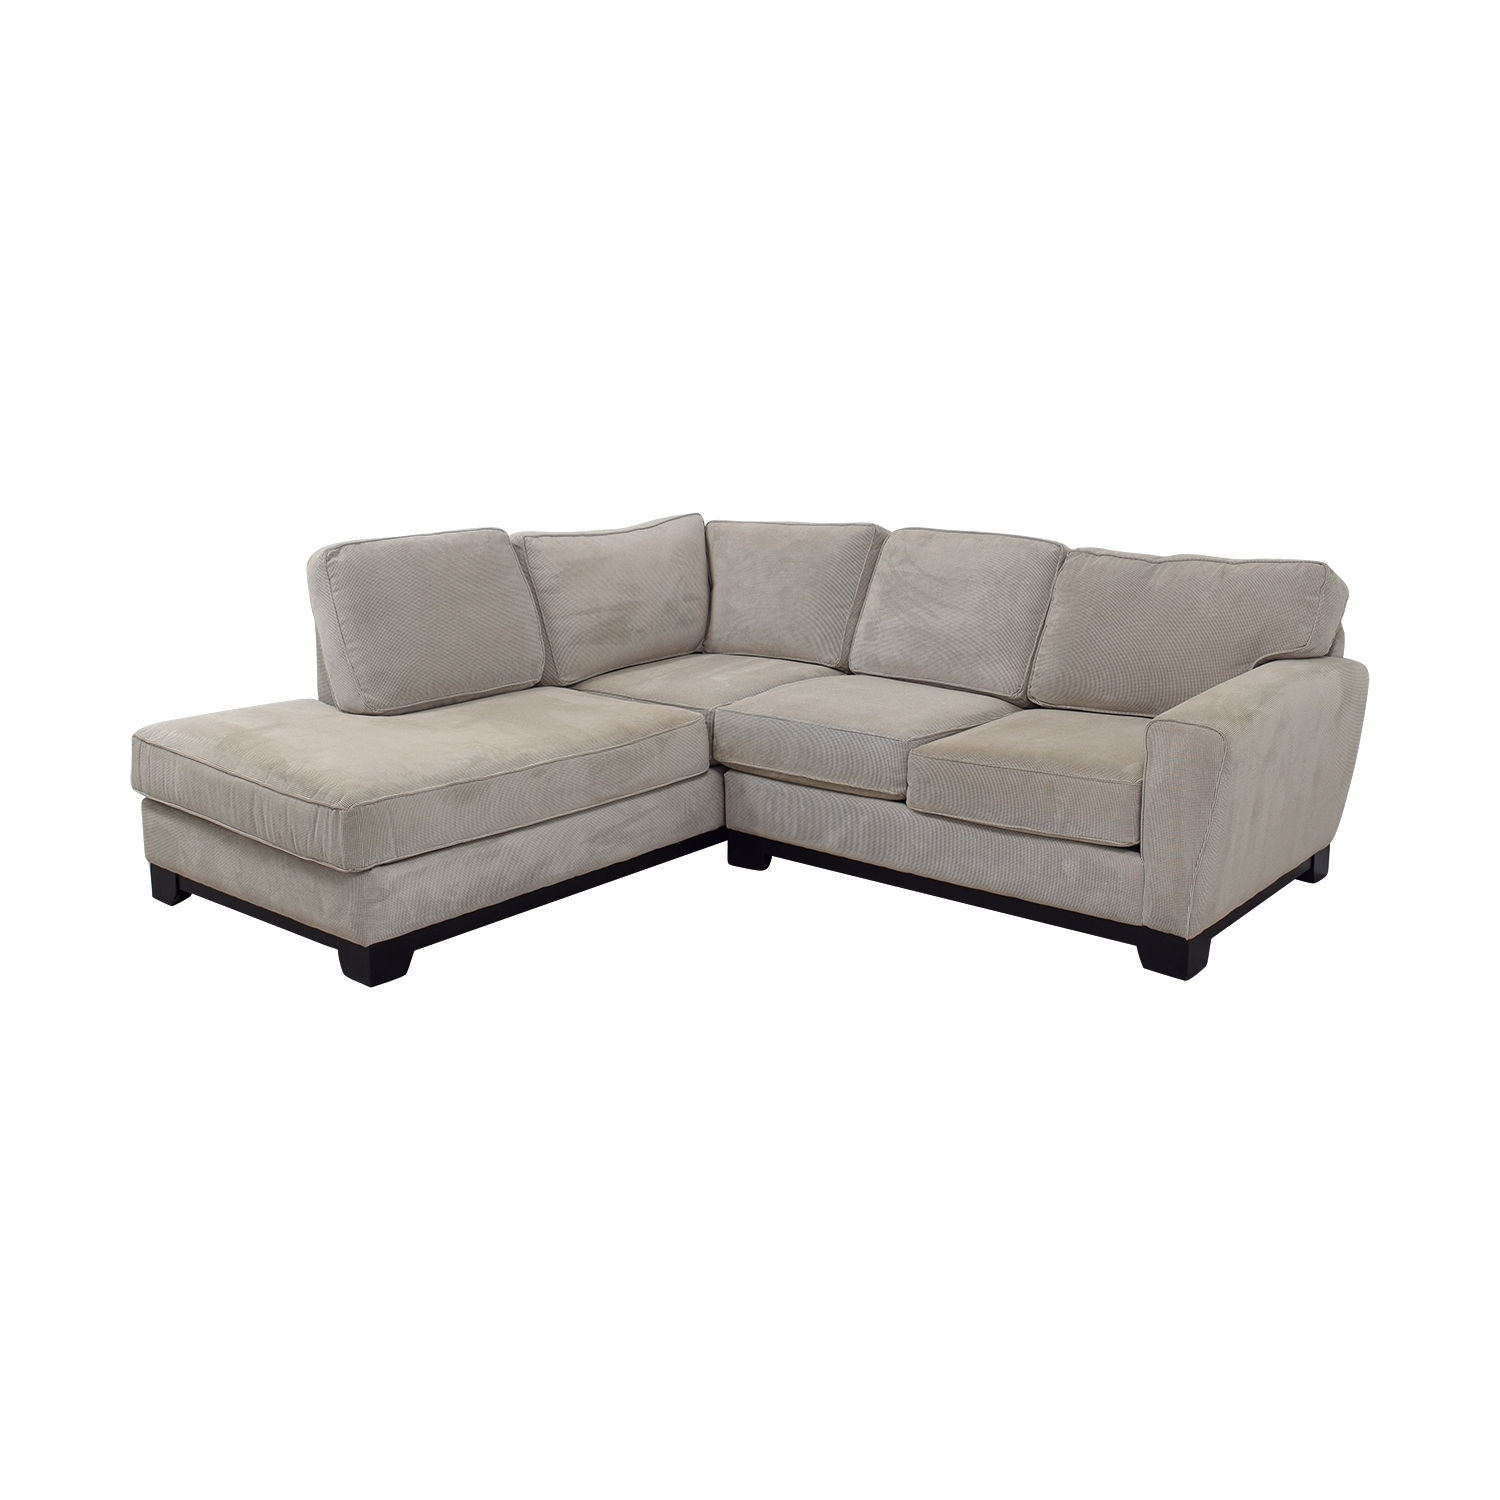 [%80% Off – Jordan's Furniture Jordan's Furniture Beige L Shaped Inside Most Up To Date Jordans Sectional Sofas|Jordans Sectional Sofas For 2017 80% Off – Jordan's Furniture Jordan's Furniture Beige L Shaped|2018 Jordans Sectional Sofas Pertaining To 80% Off – Jordan's Furniture Jordan's Furniture Beige L Shaped|Famous 80% Off – Jordan's Furniture Jordan's Furniture Beige L Shaped With Jordans Sectional Sofas%] (View 1 of 15)